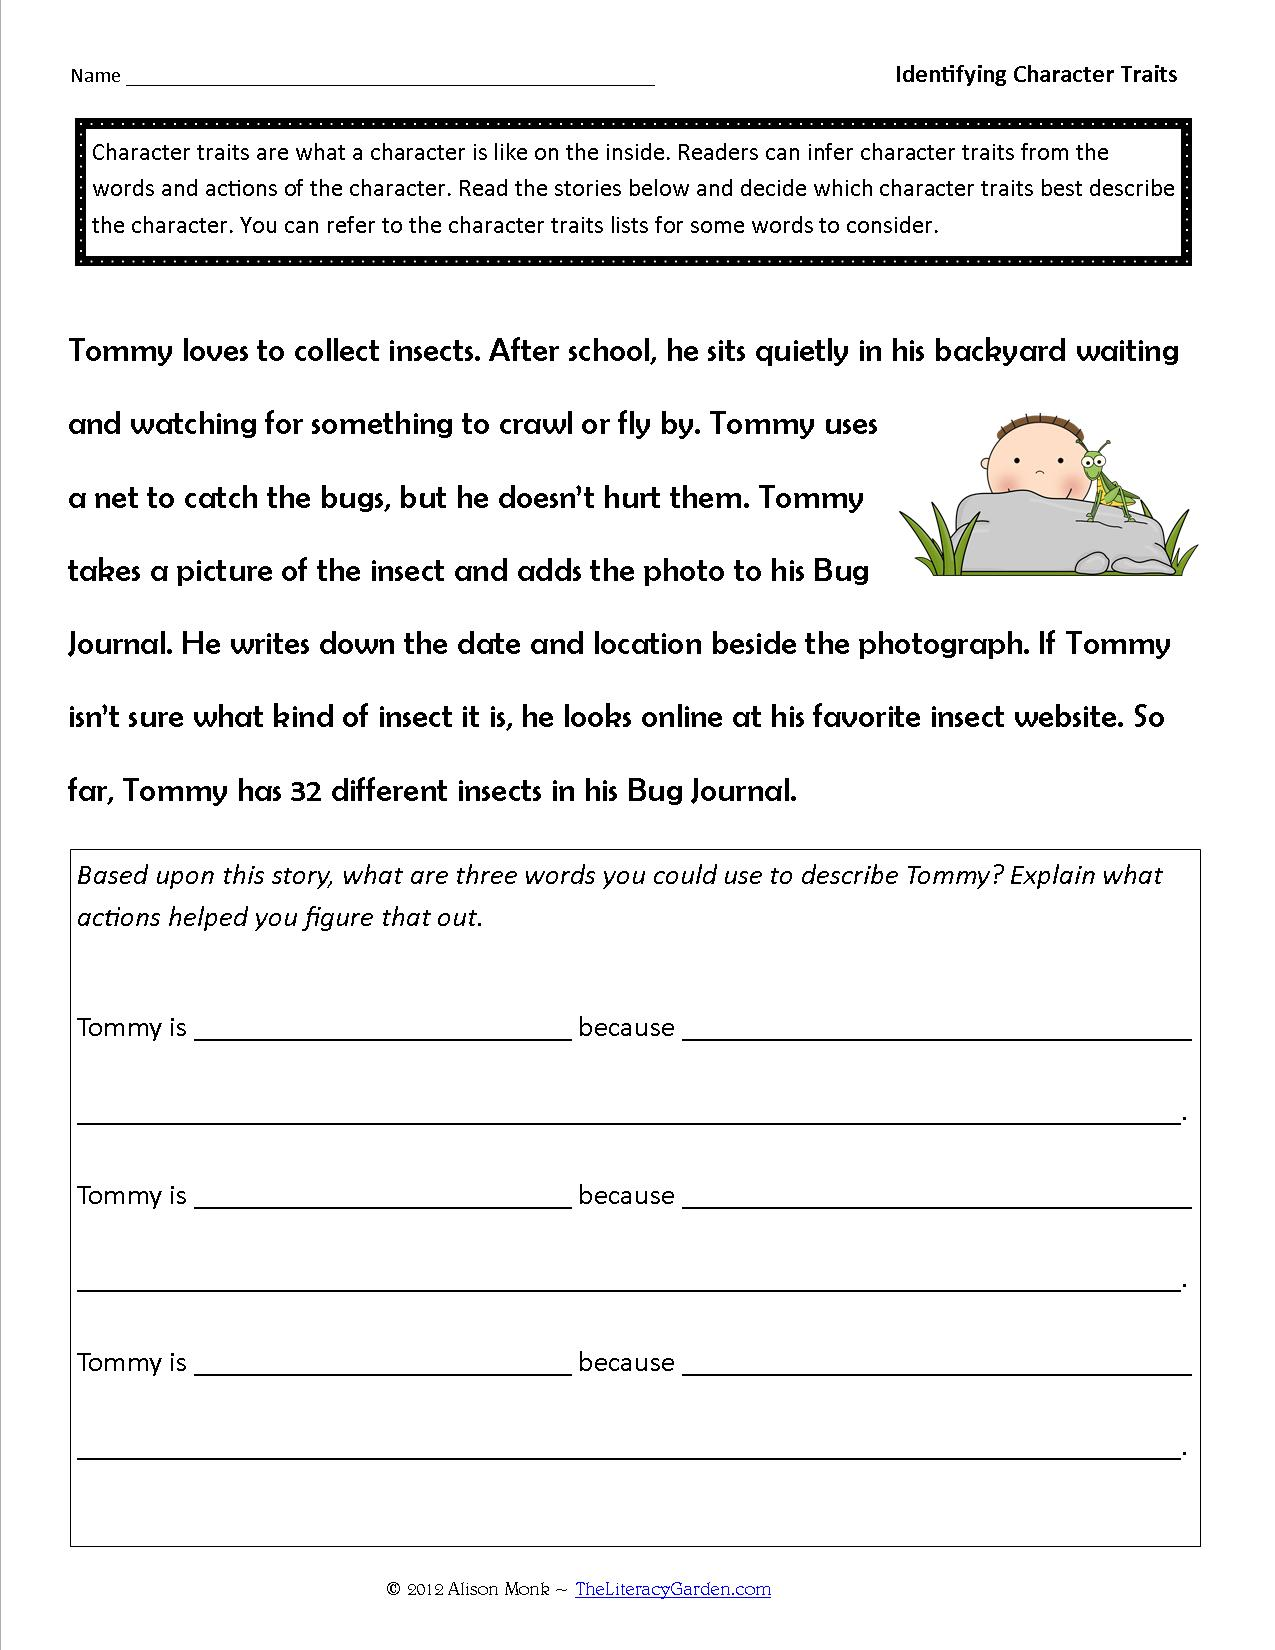 Free Worksheet Identifying Character Traits Worksheet character trait lessons throughout the year we continue to identify traits expand their vocabulary and add our bulletin board if you would like a copy of my